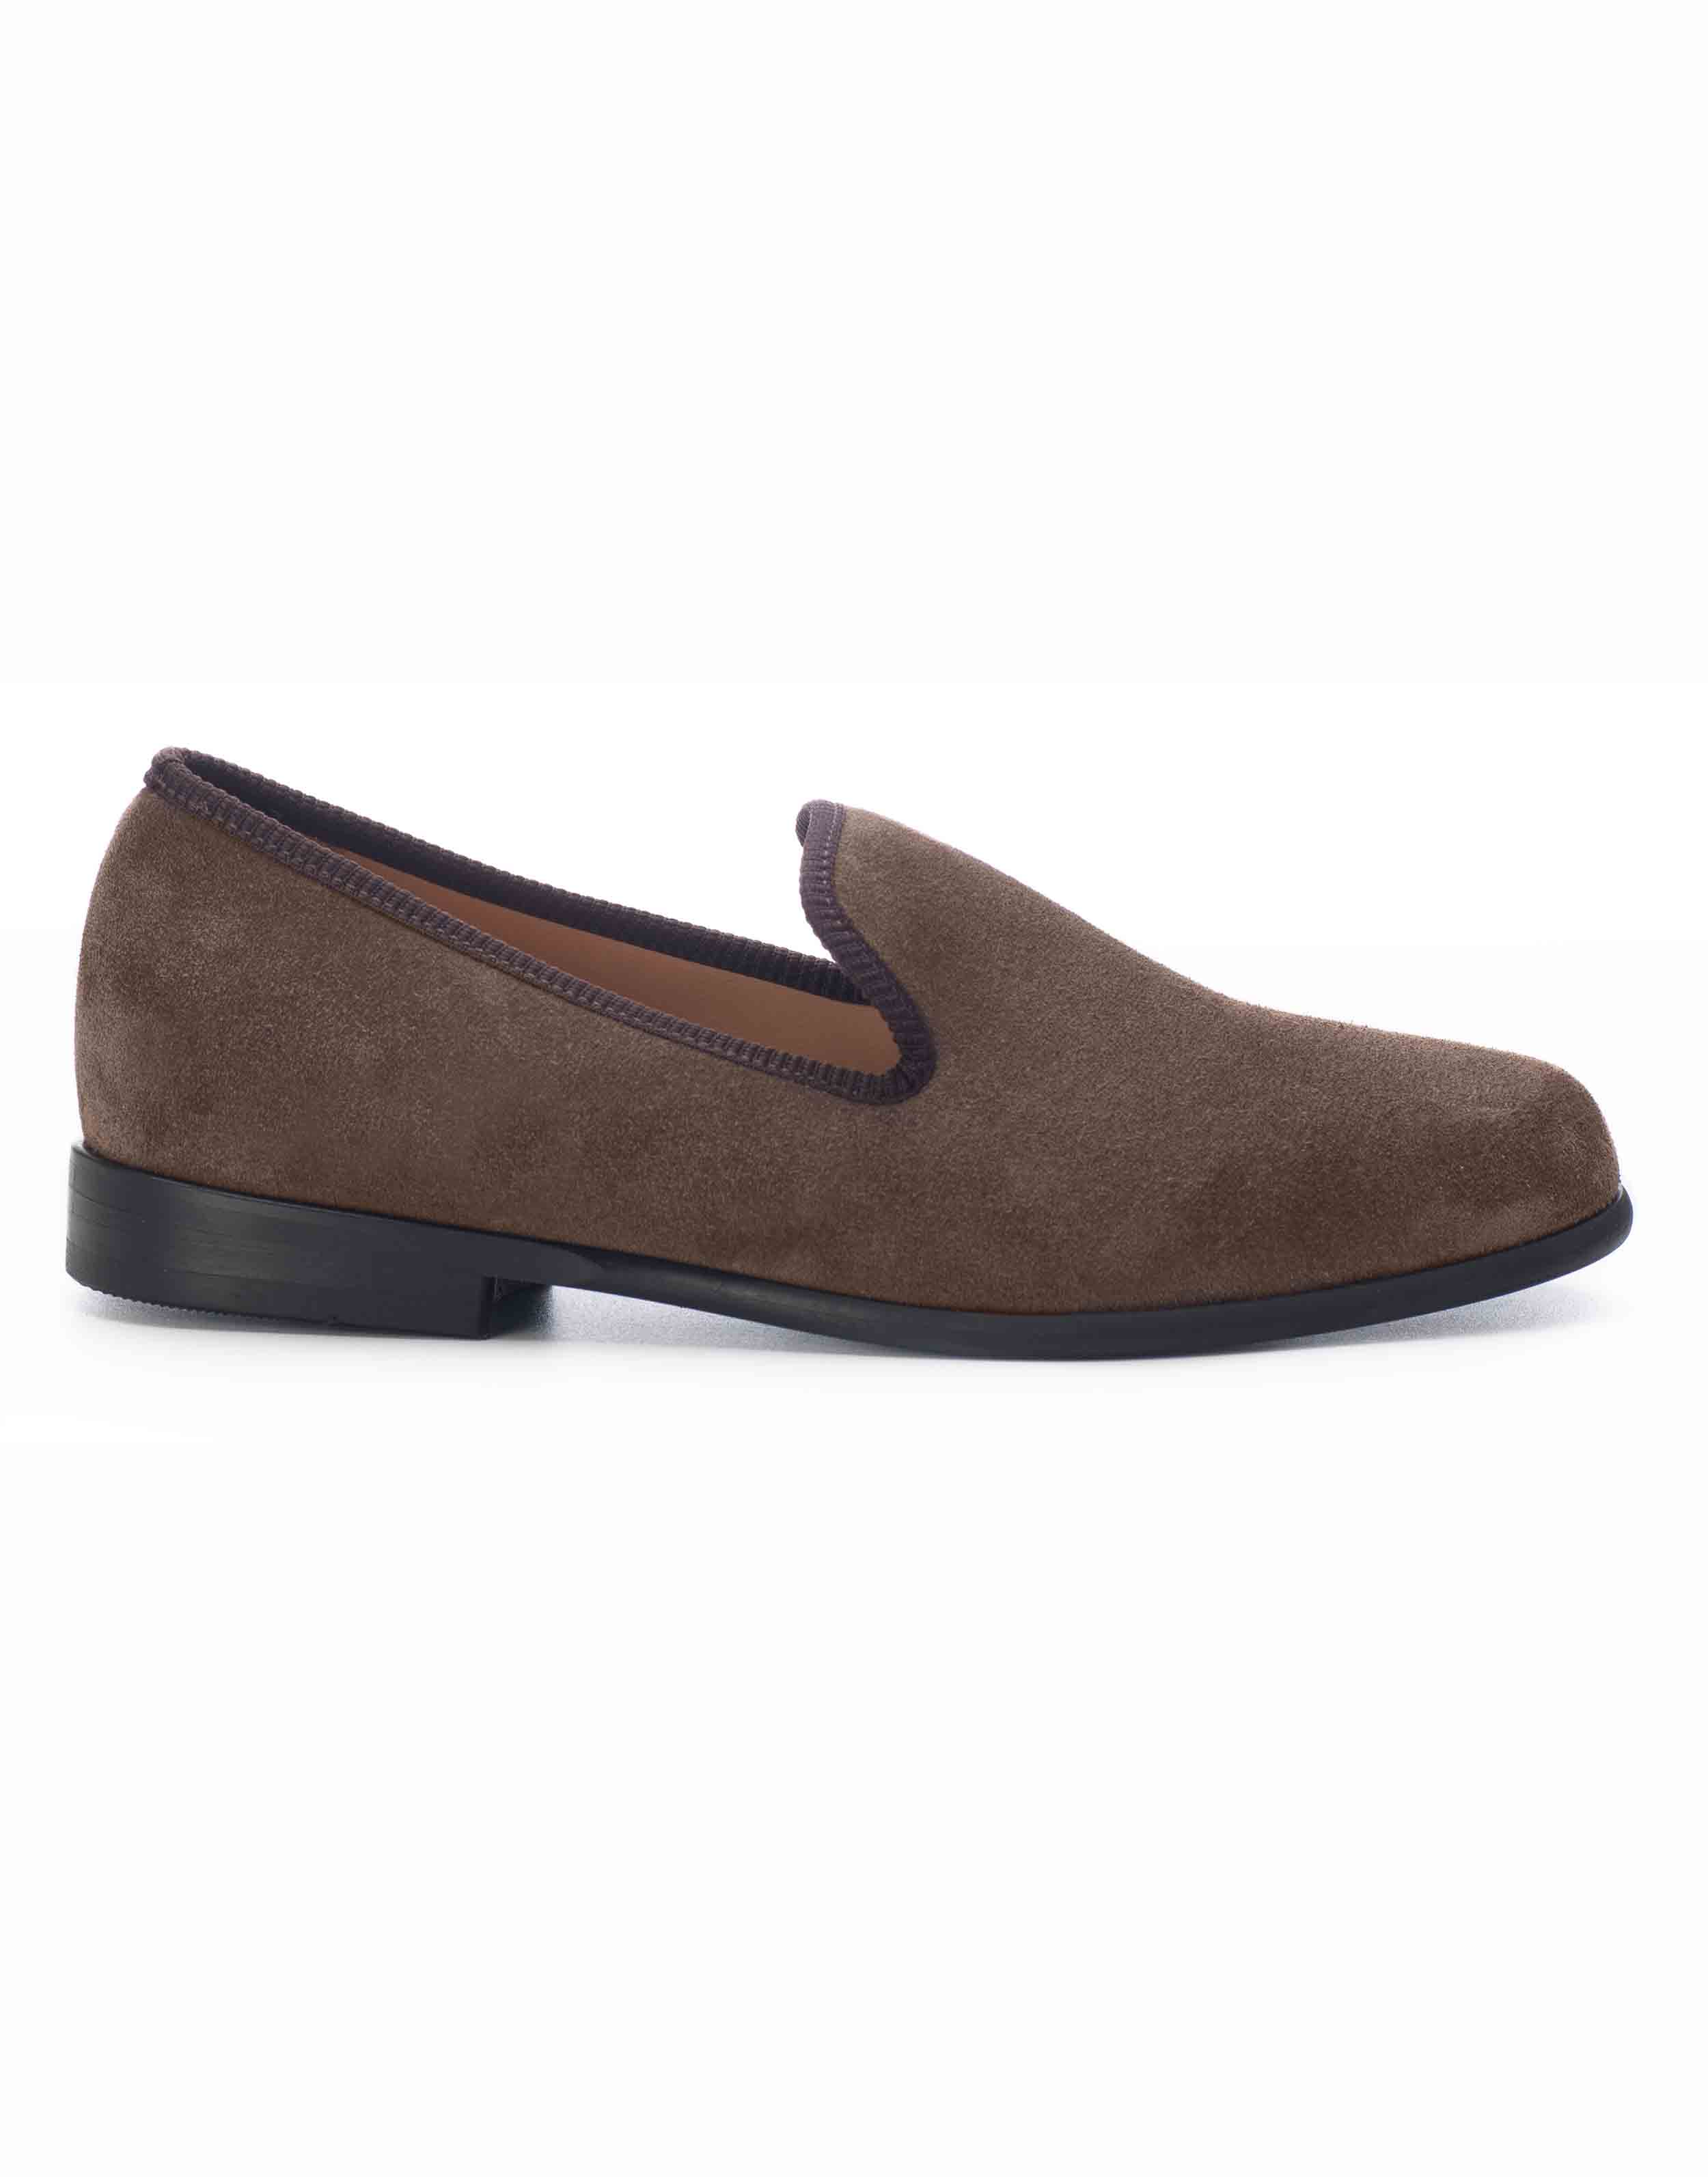 BROWN SUEDE LOAFERS1